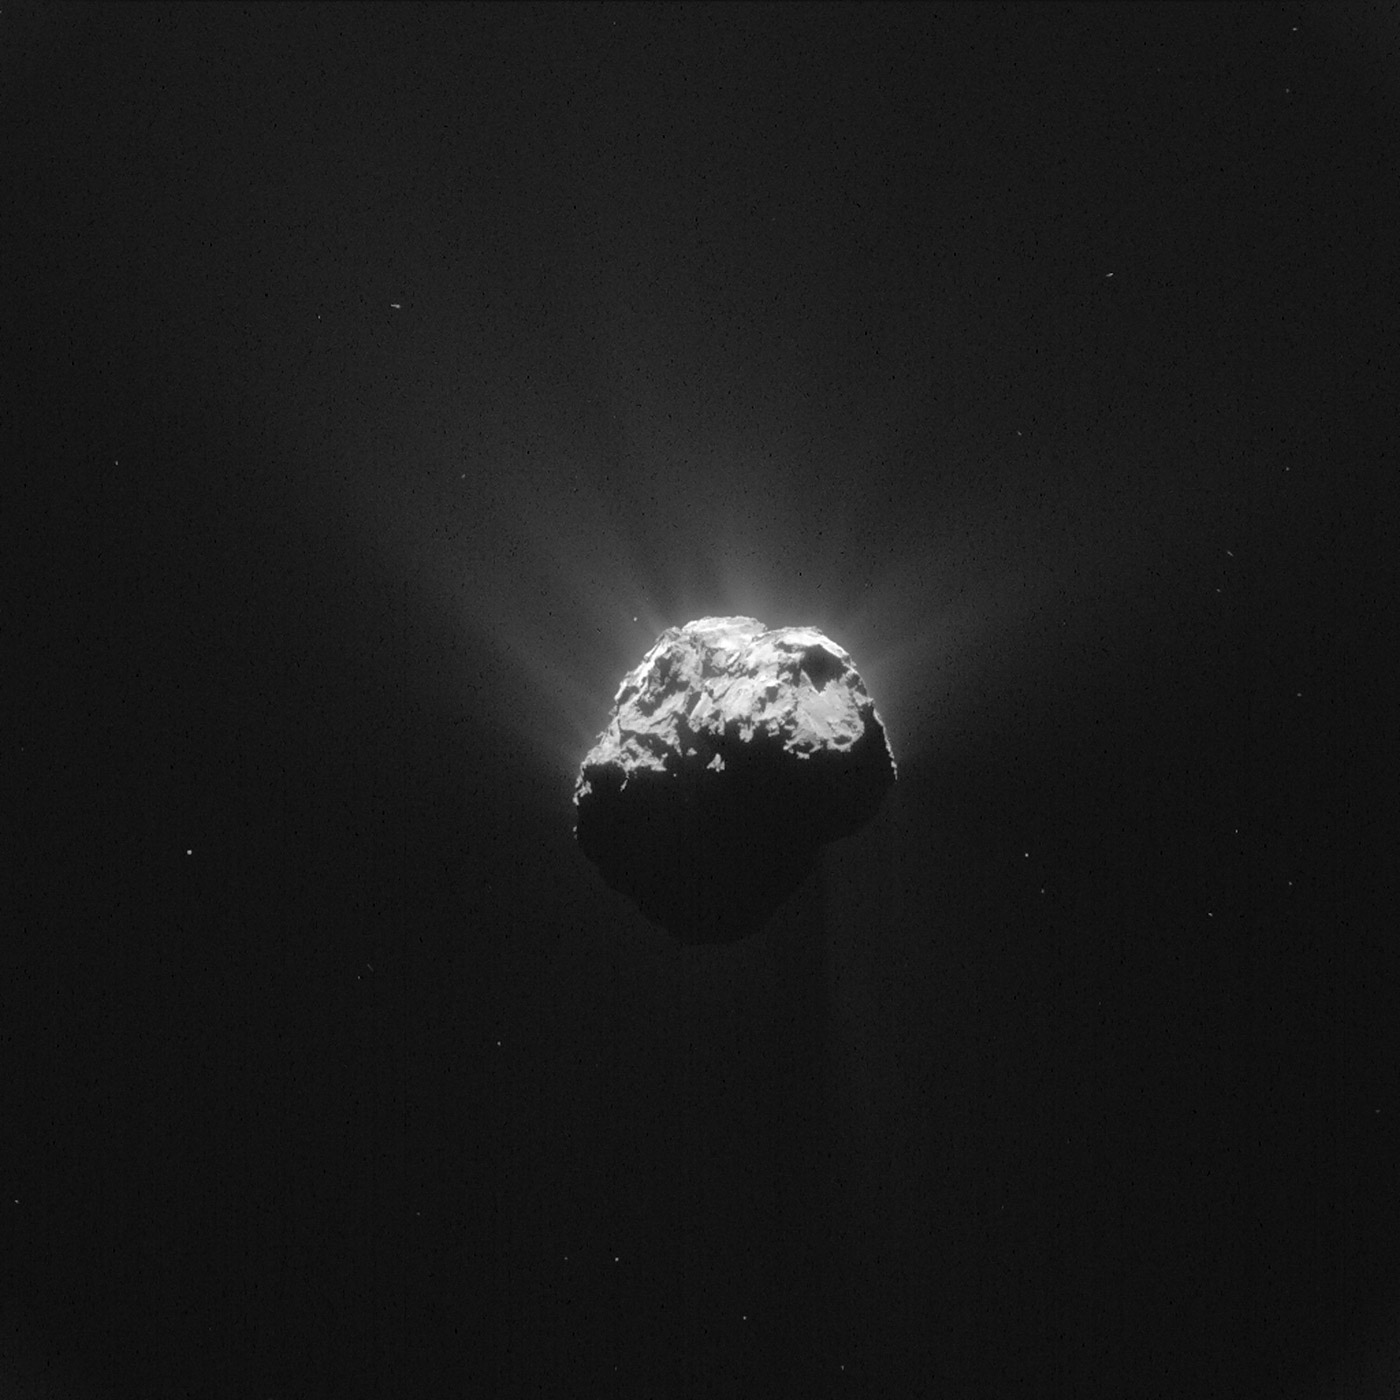 The Comet 67P/Churyumov-Gerasimenko is seen in an image taken by the Rosetta space probe on June 13, 2015.